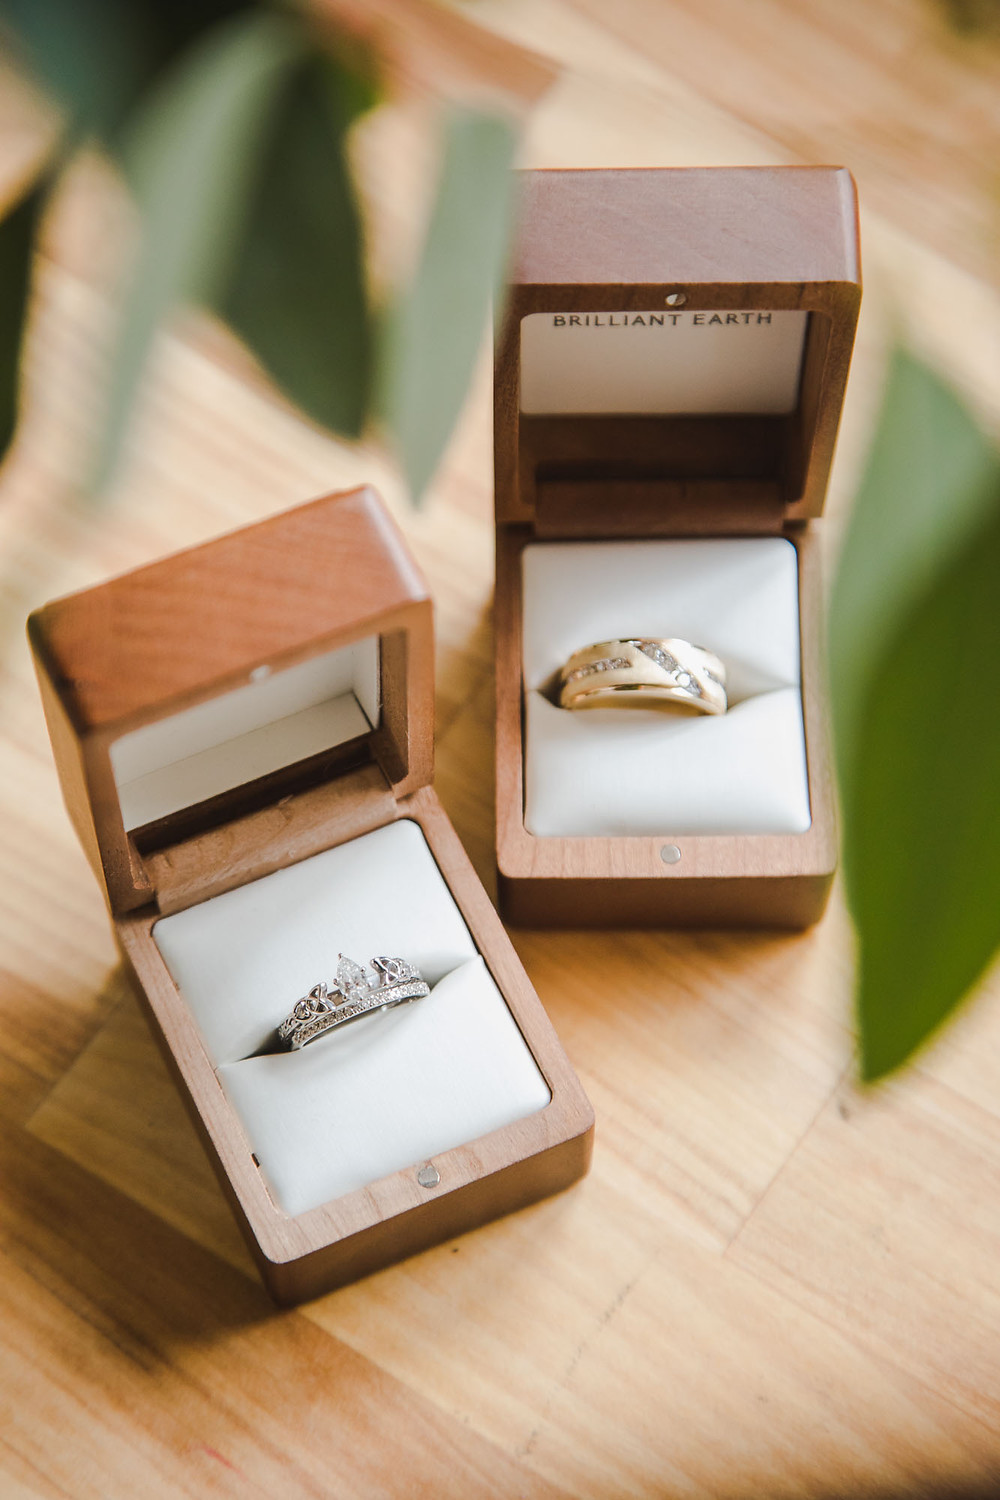 Wedding rings in wooden boxes on a wooden bench with leaves surrounding